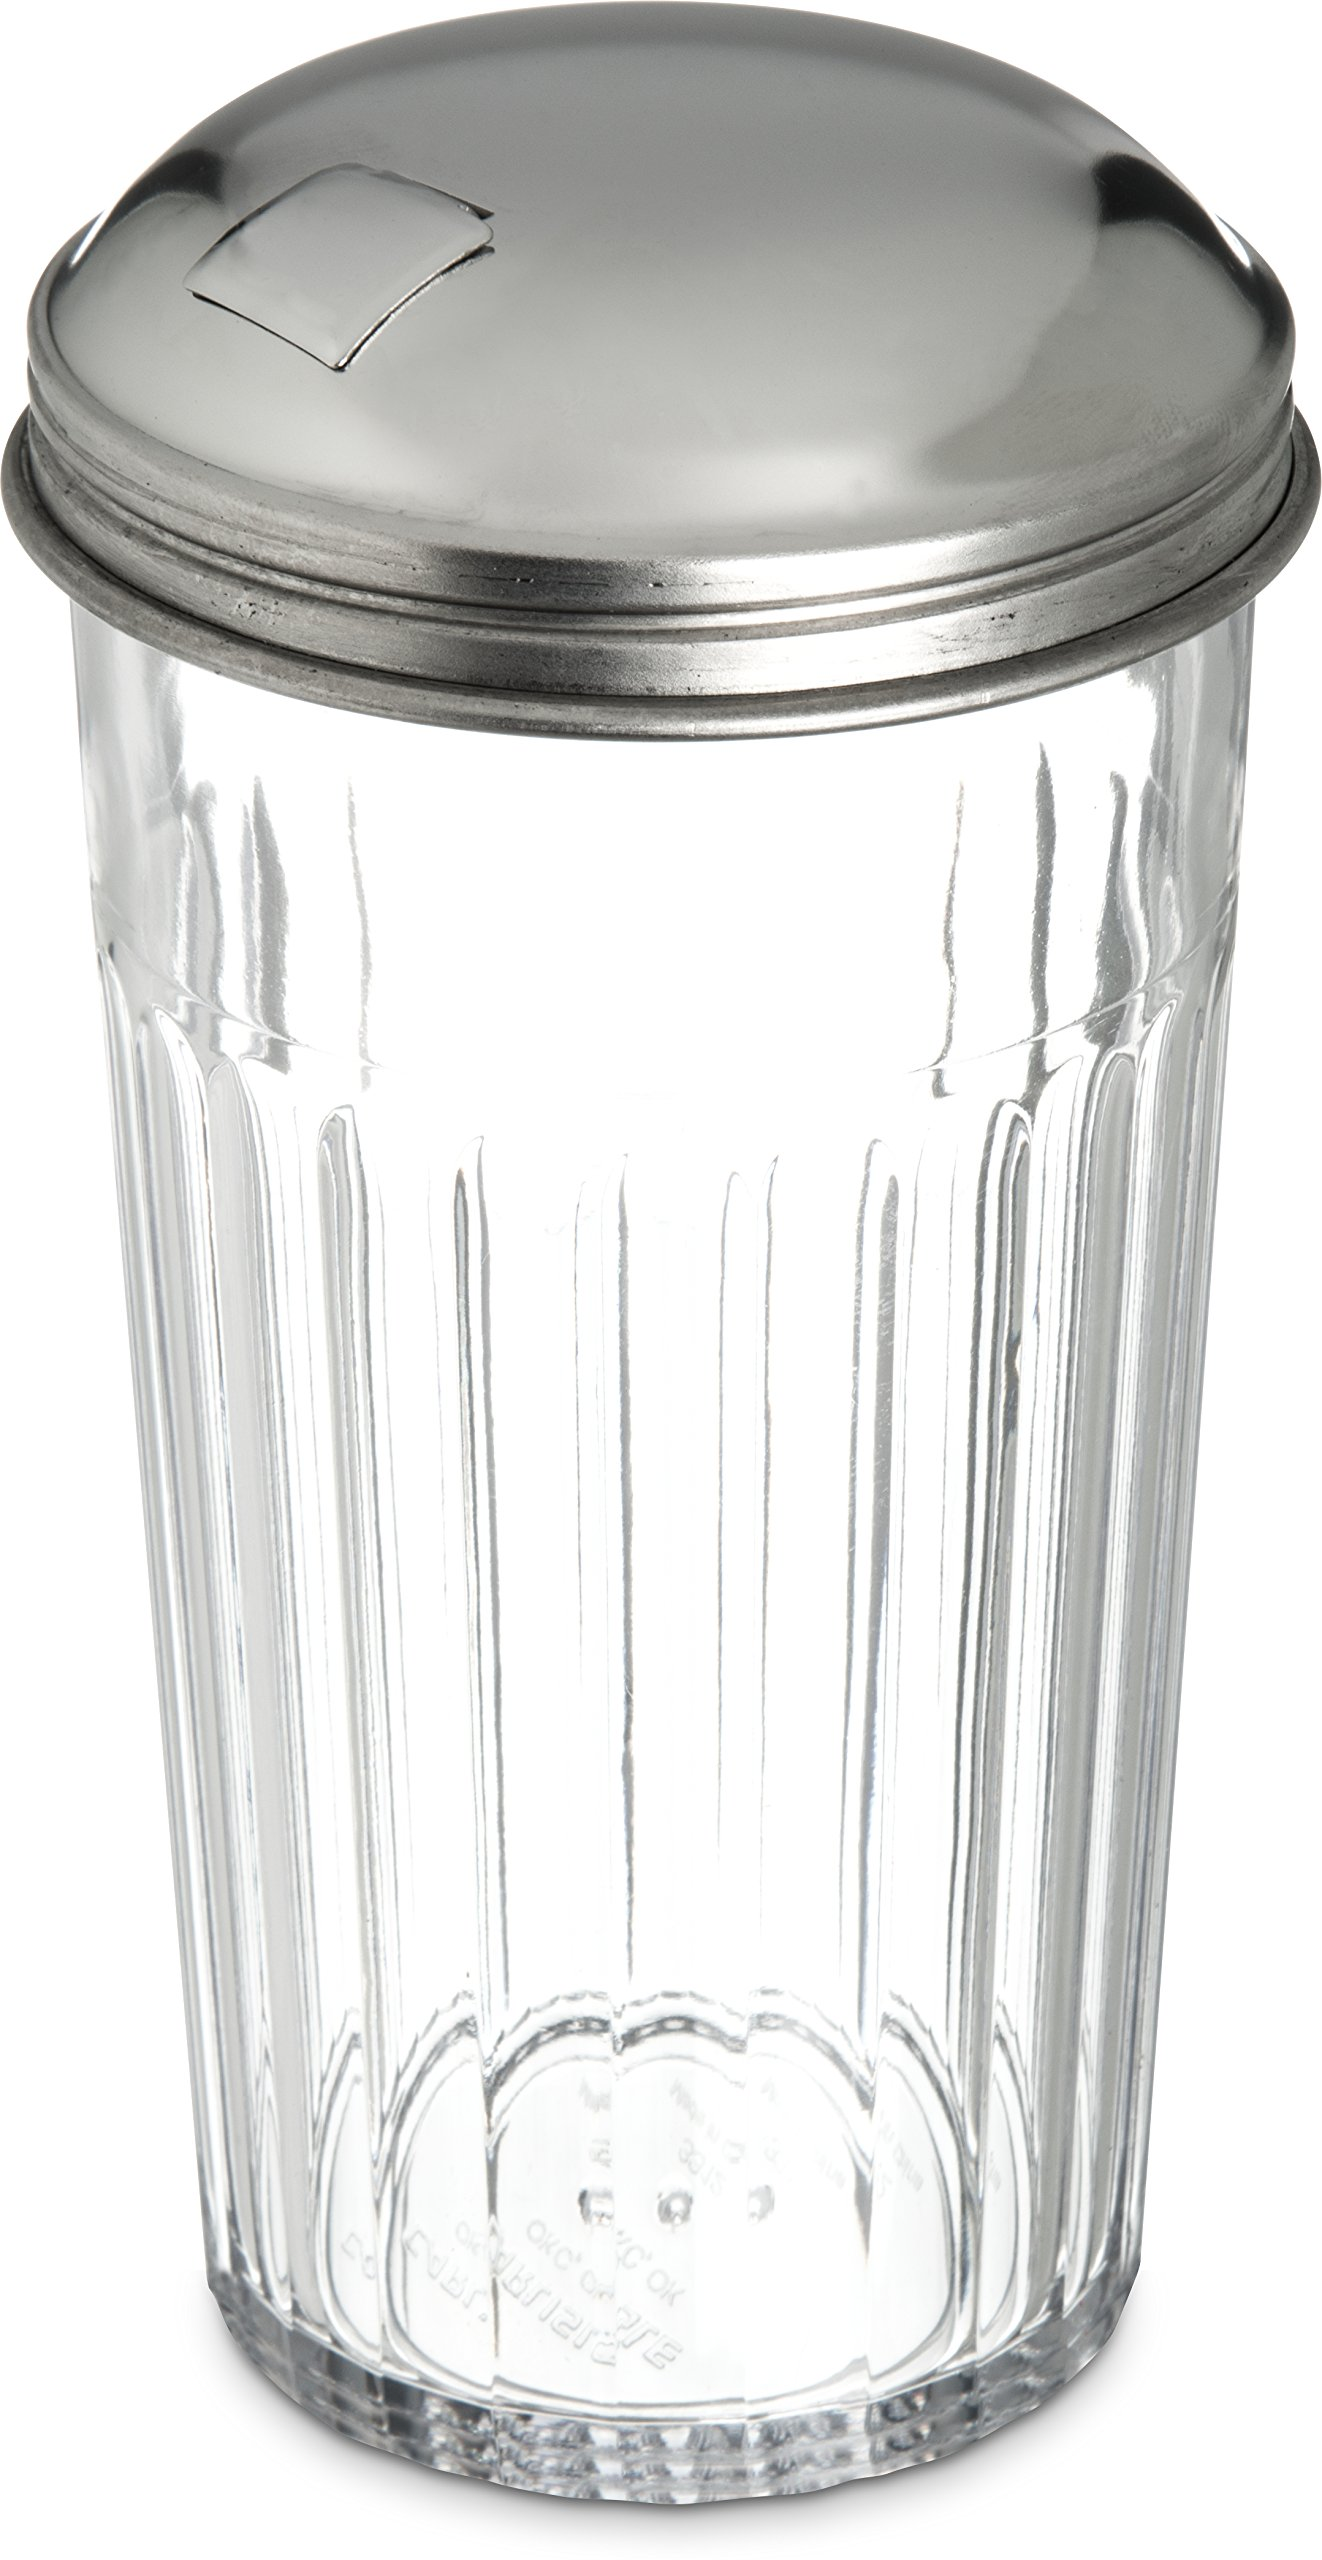 Carlisle 331607 SAN Base Sugar Pourer Shaker with Stainless Steel Top, 12-oz. Capacity, Clear (Case of 36) by Carlisle